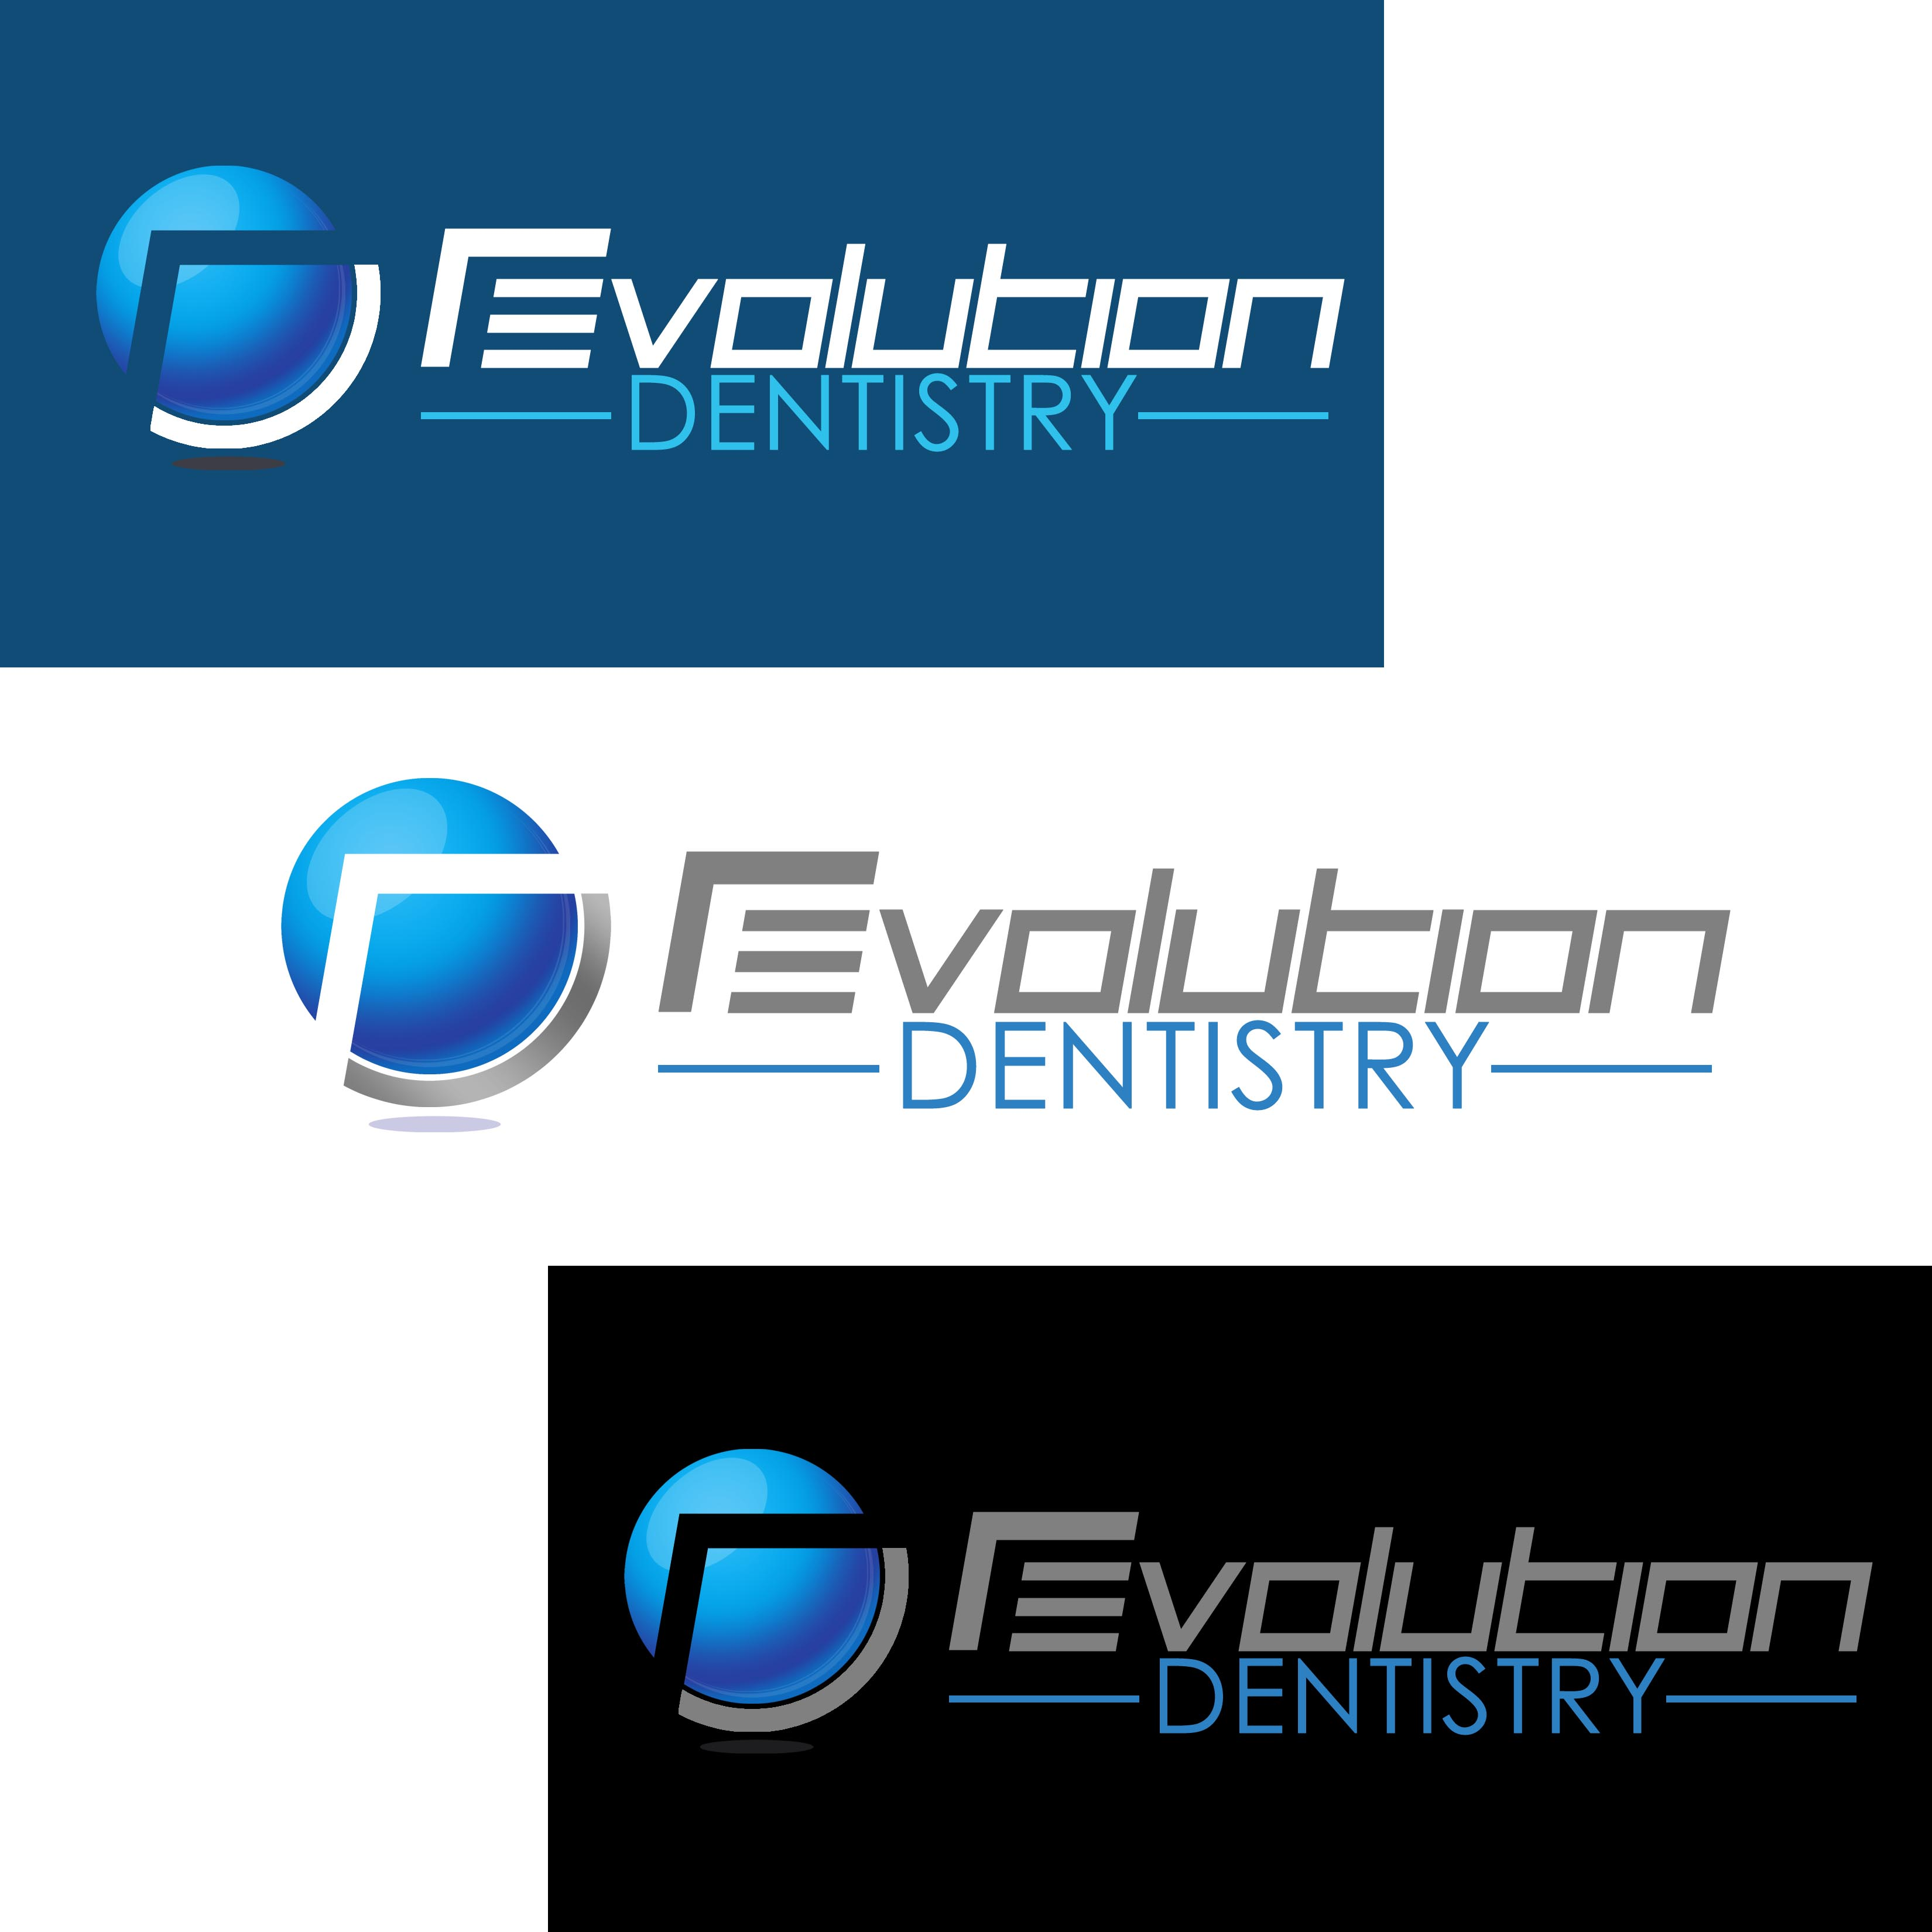 Logo Design by Cesar III Sotto - Entry No. 201 in the Logo Design Contest Artistic Logo Design for Revolution Dentistry.